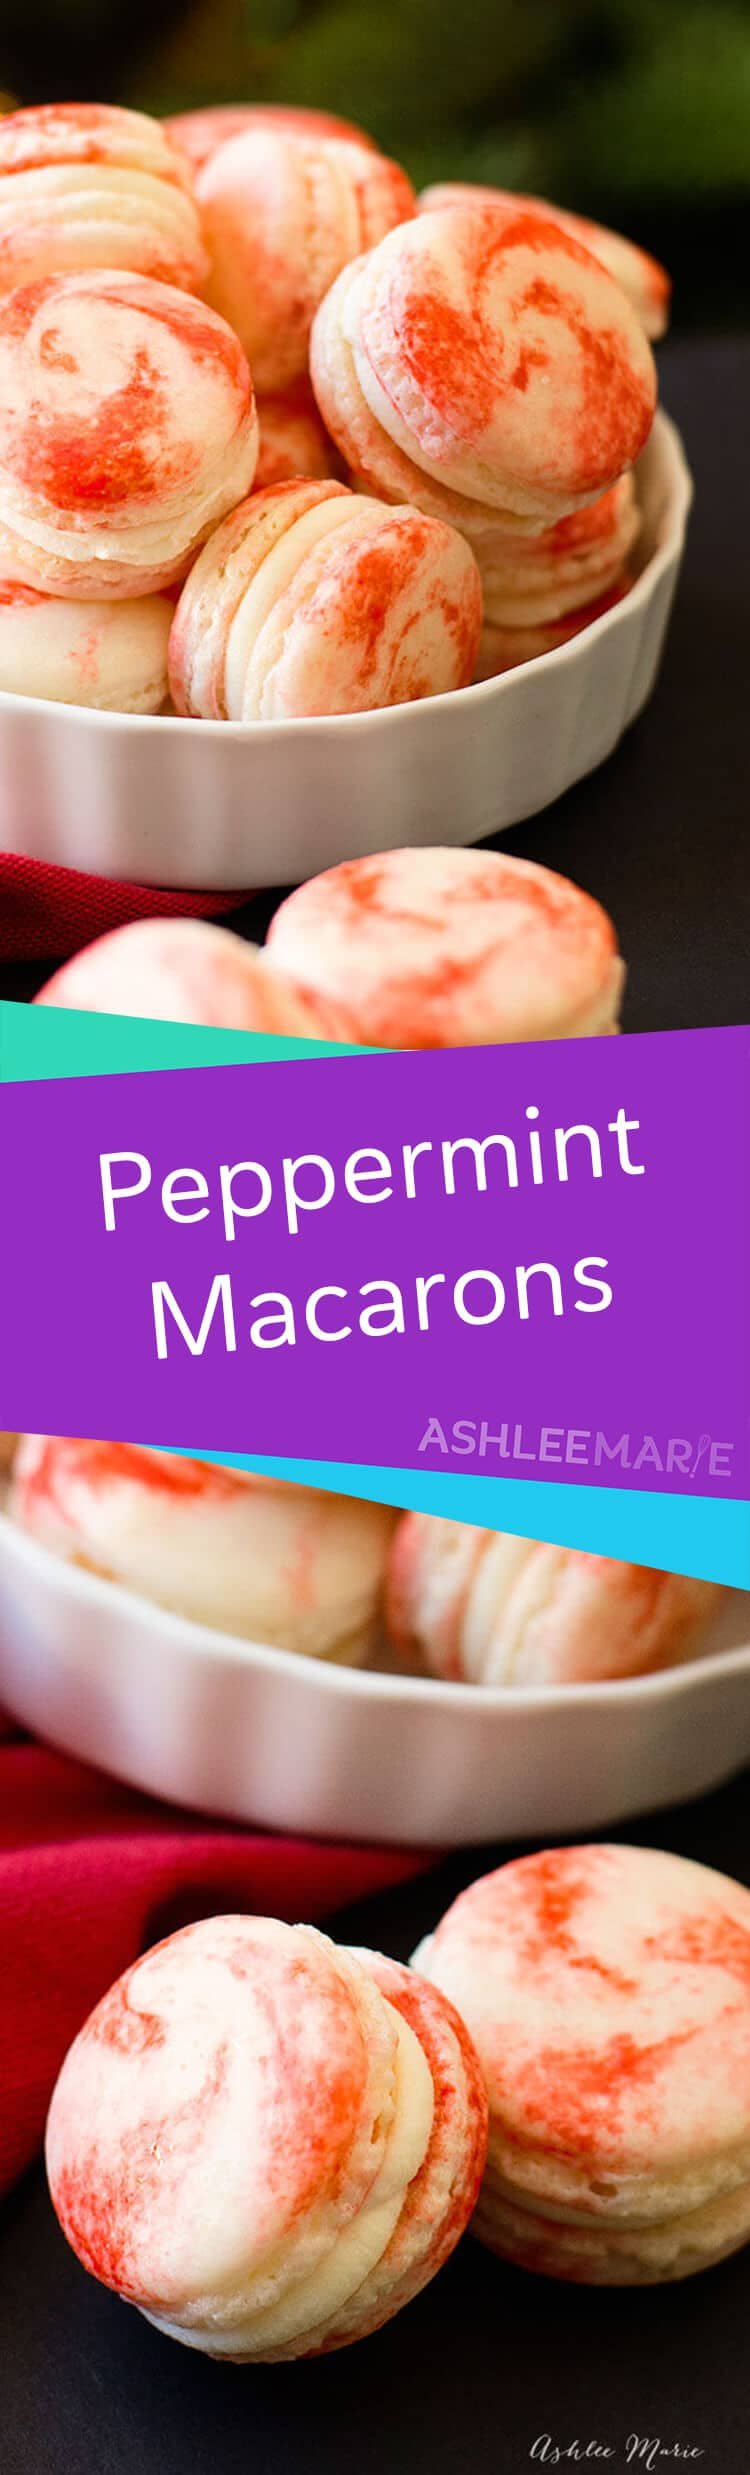 peppermint macaron video tutorial